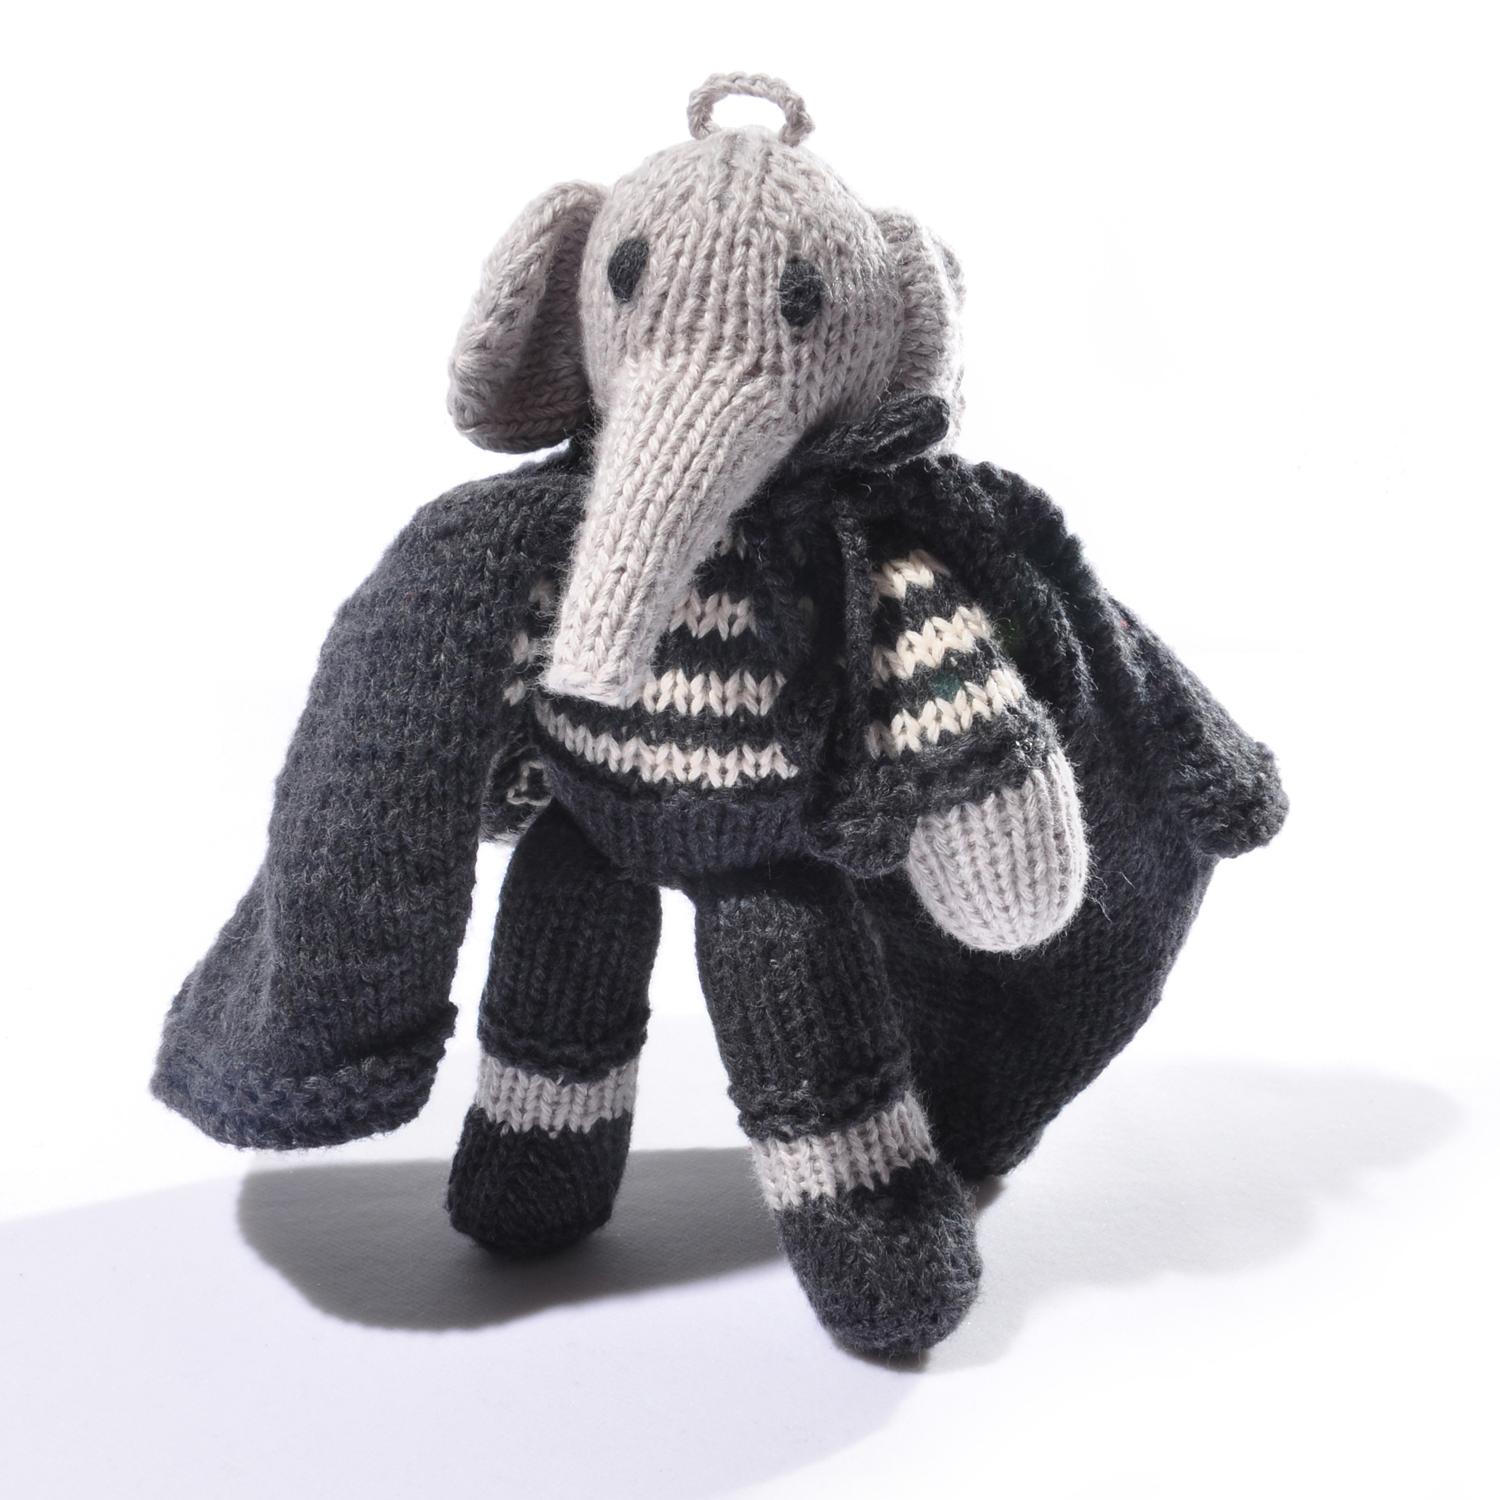 Halloween Elephant Toddler Soft Toy in Black Cape